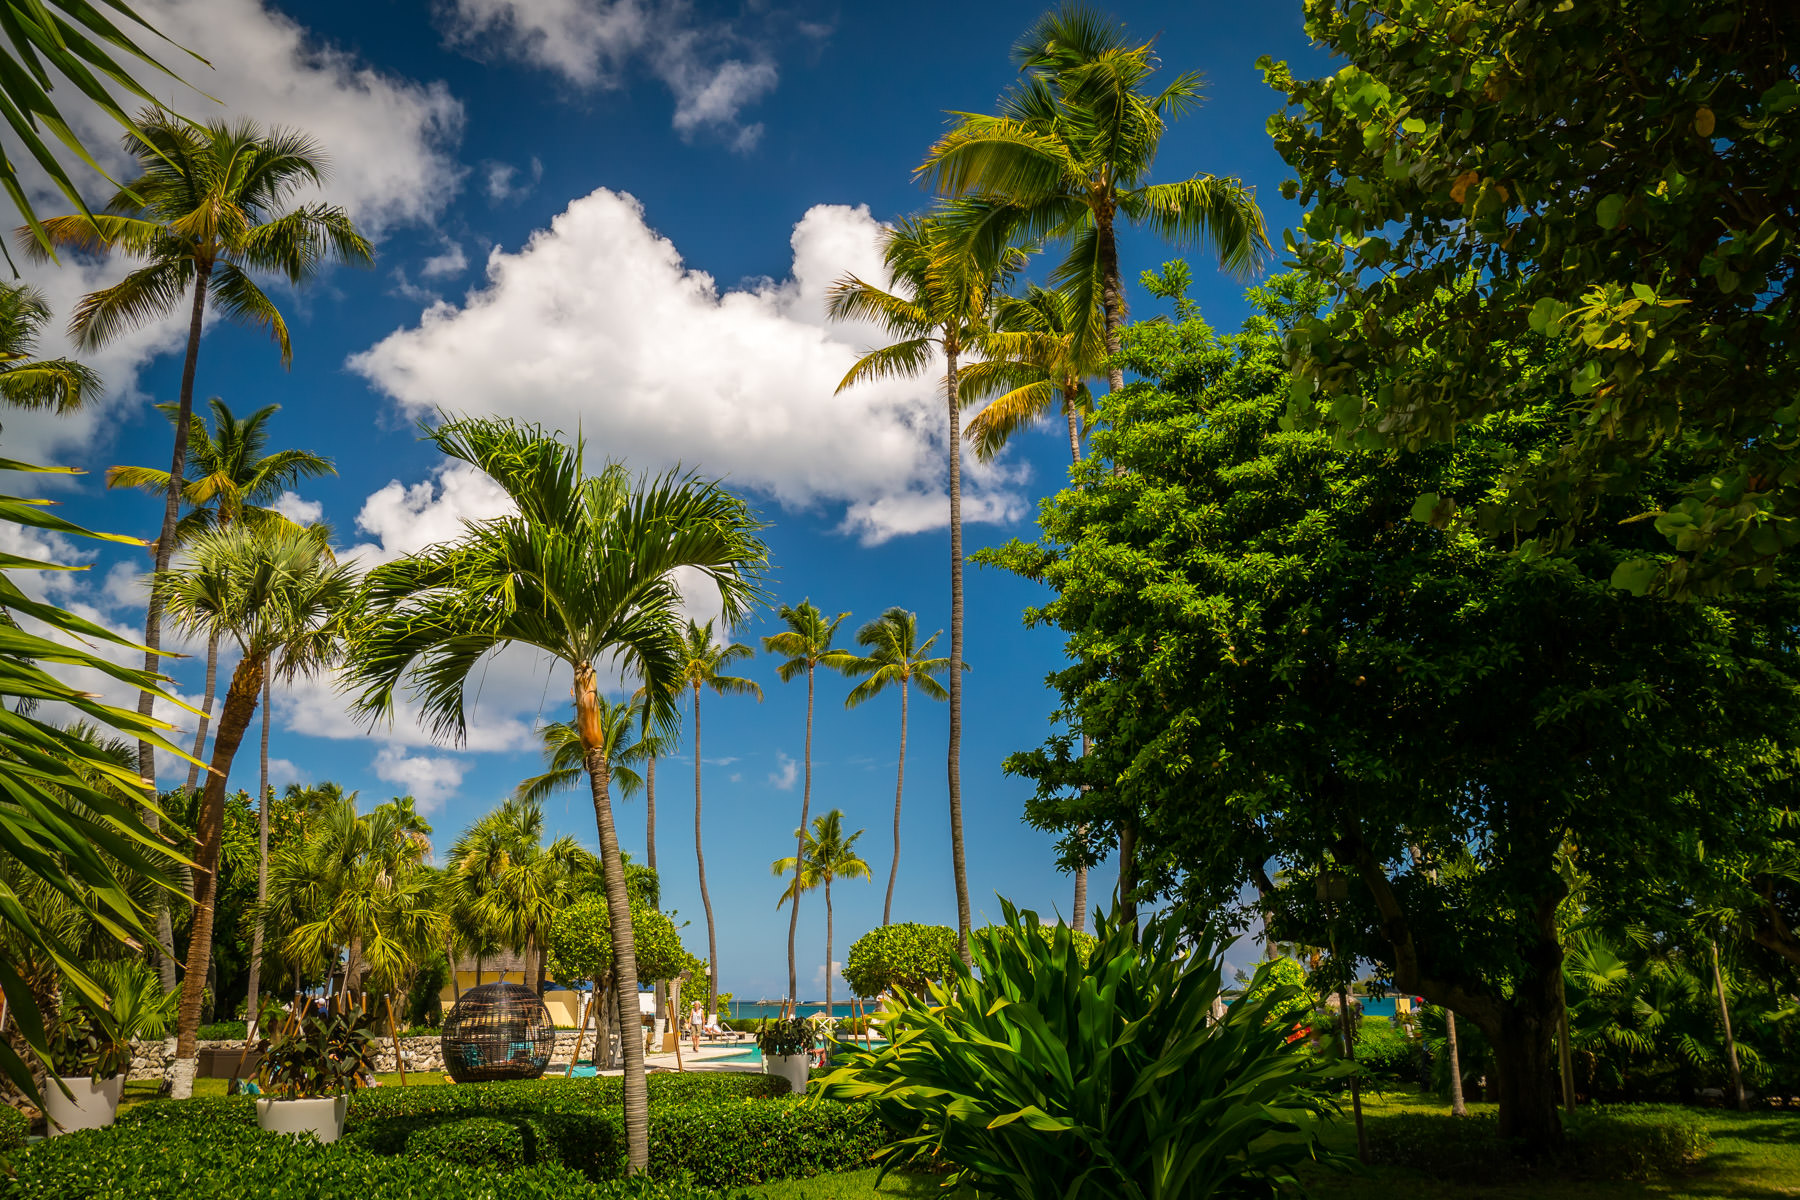 Palm trees tower over the grounds of the historic British Colonial Hilton in Nassau, Bahamas.